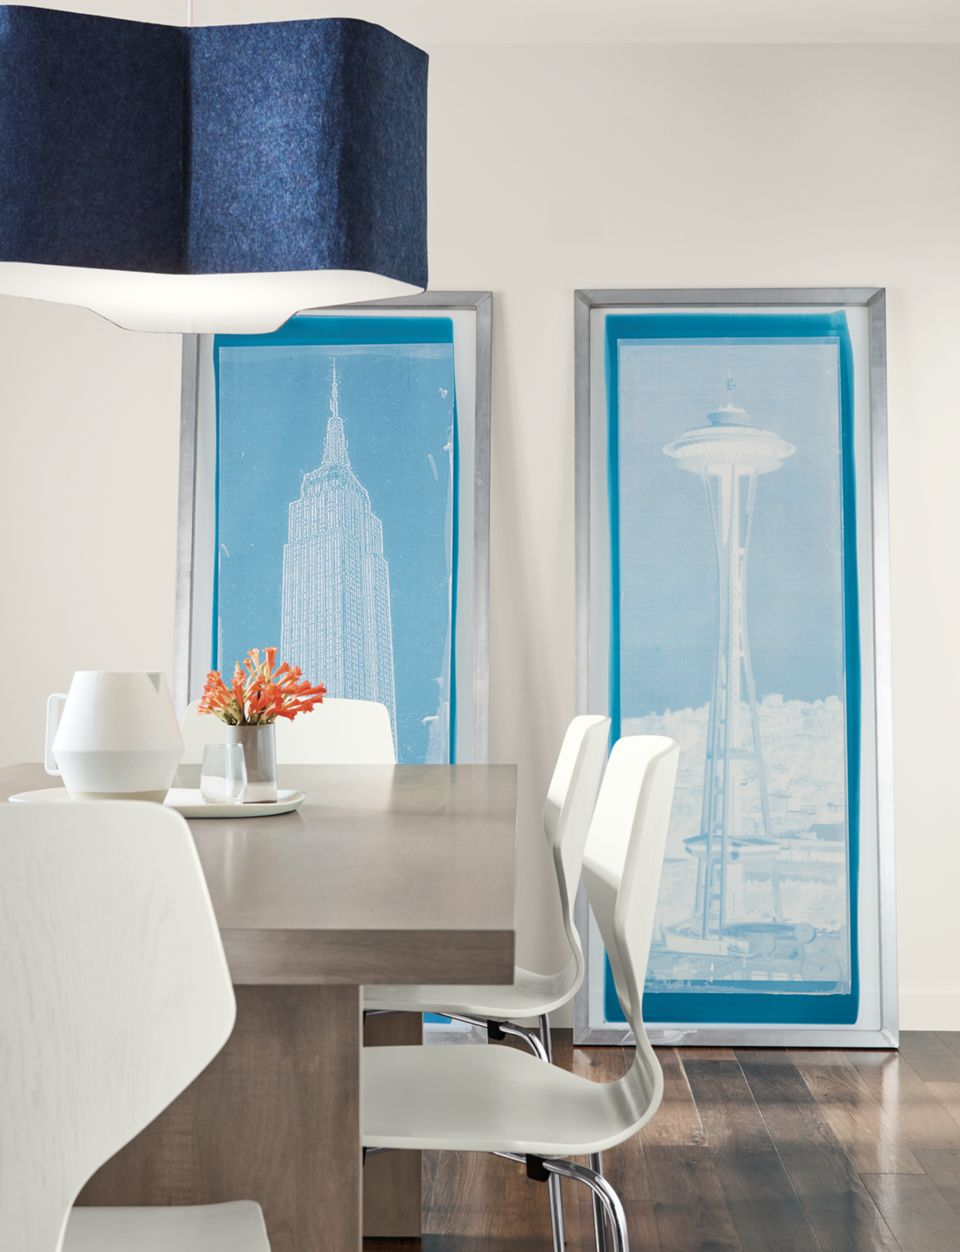 Detail of Space Needle screen art in blue/white